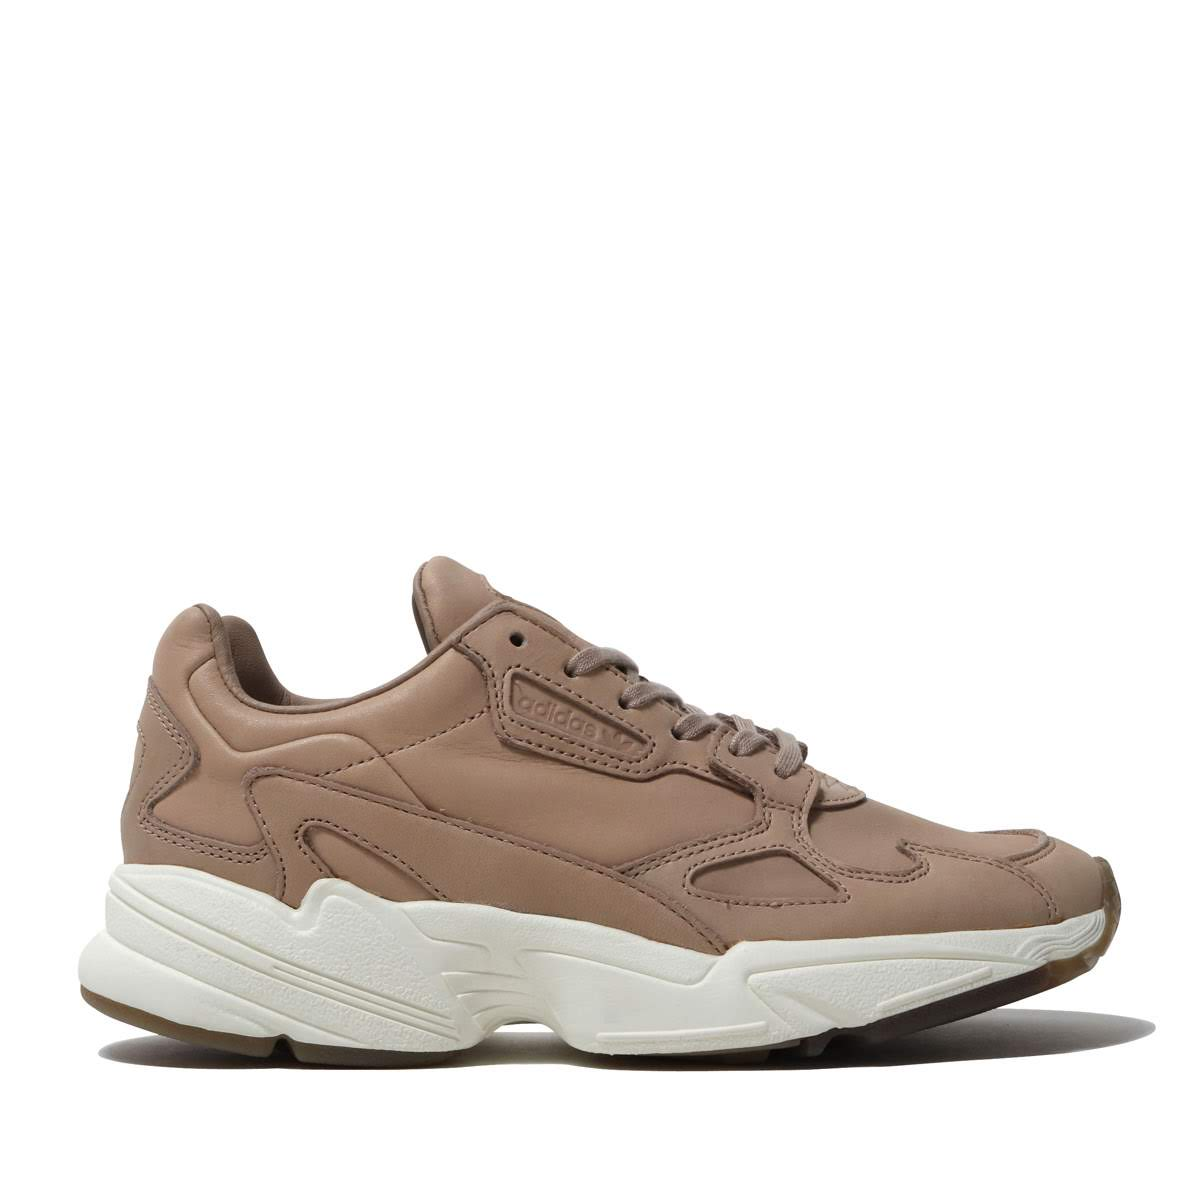 low priced 379d0 ffbe2 Kinetics adidas Originals ADIDASFALCON W (ASH PEARLASH PEARLOFF WHITE) ( Adidas originals falcon W)  Rakuten Global Market